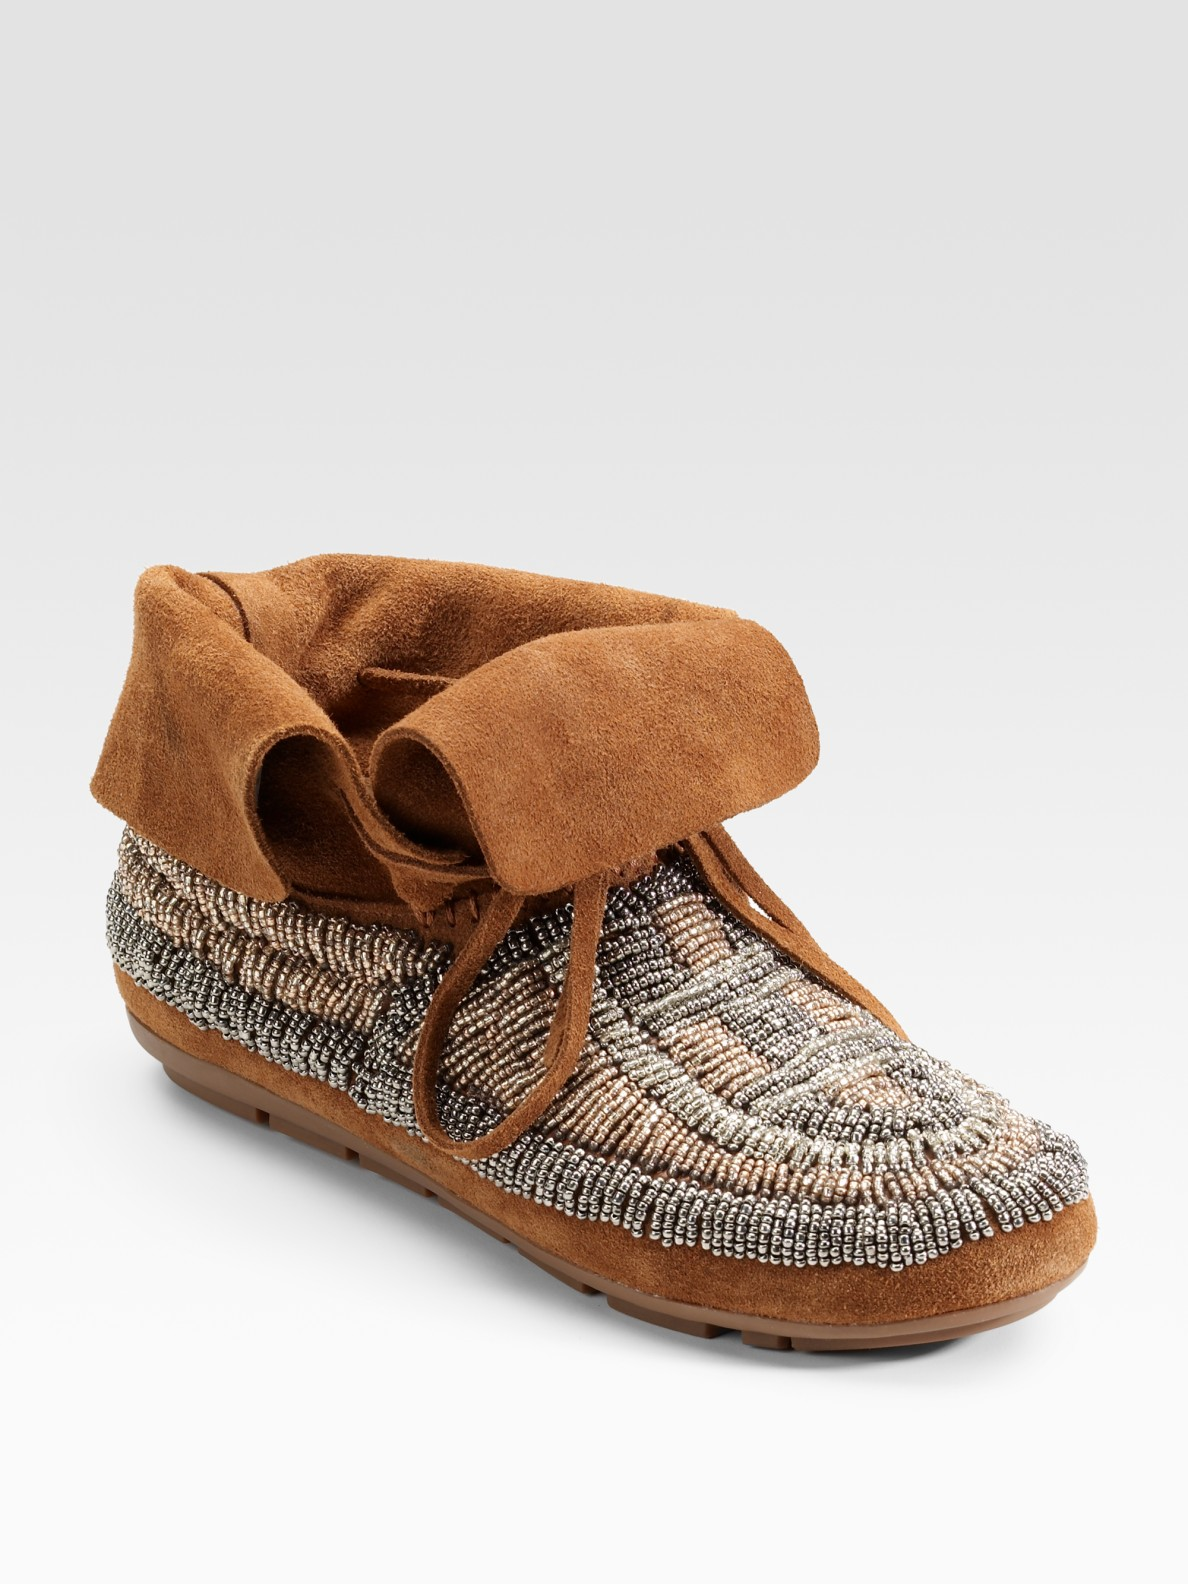 house of harlow 1960 beaded moccasin ankle boots in brown